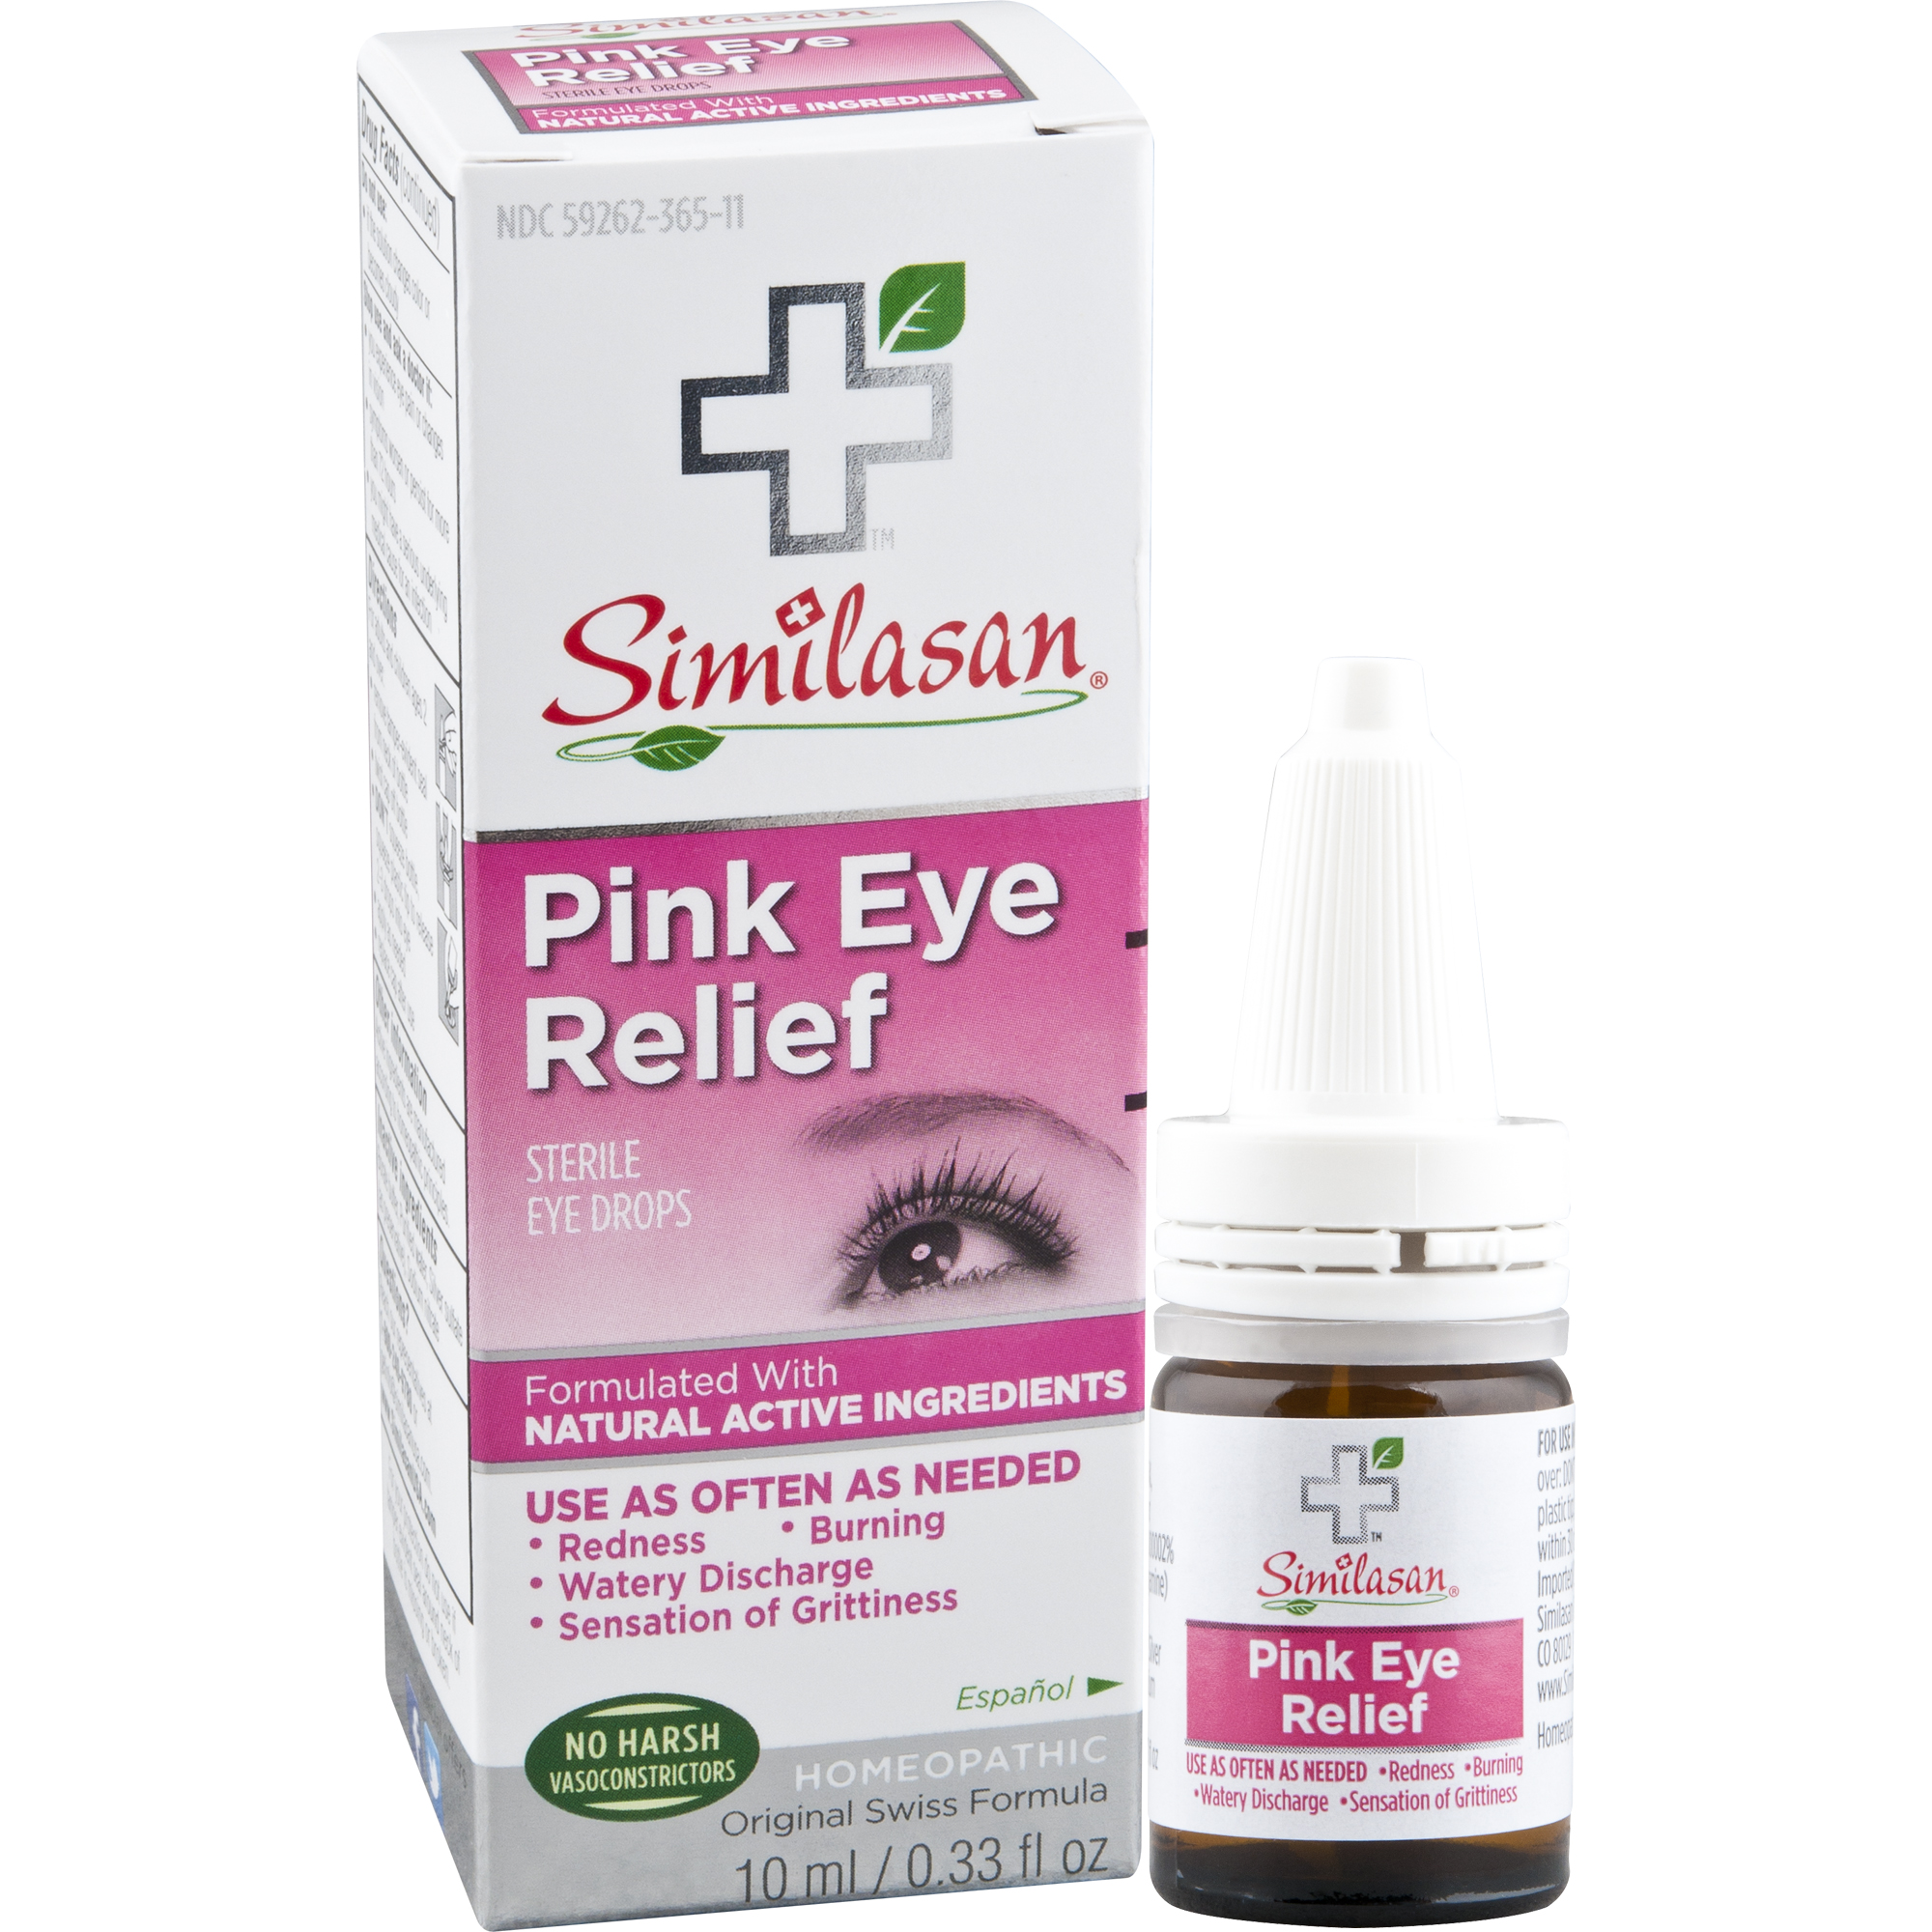 Similasan Pink Eye Relief Sterile Eye Drops, 0.33 fl. oz.